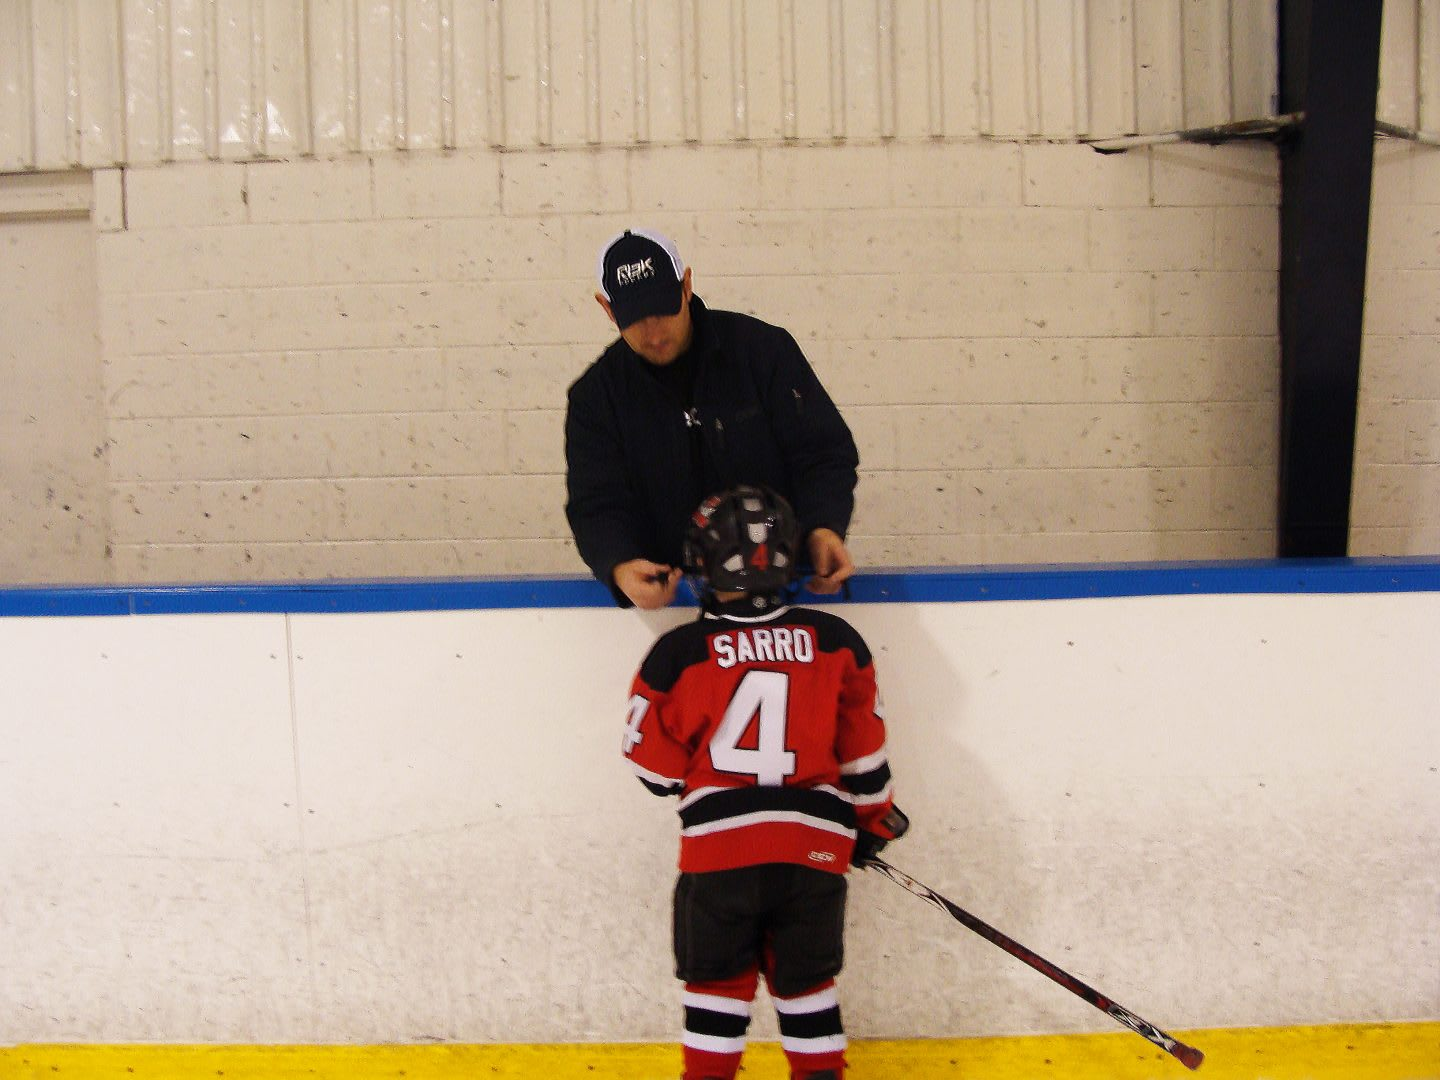 Icehockey coach Dan Sarro coaching his so on the icehockey field